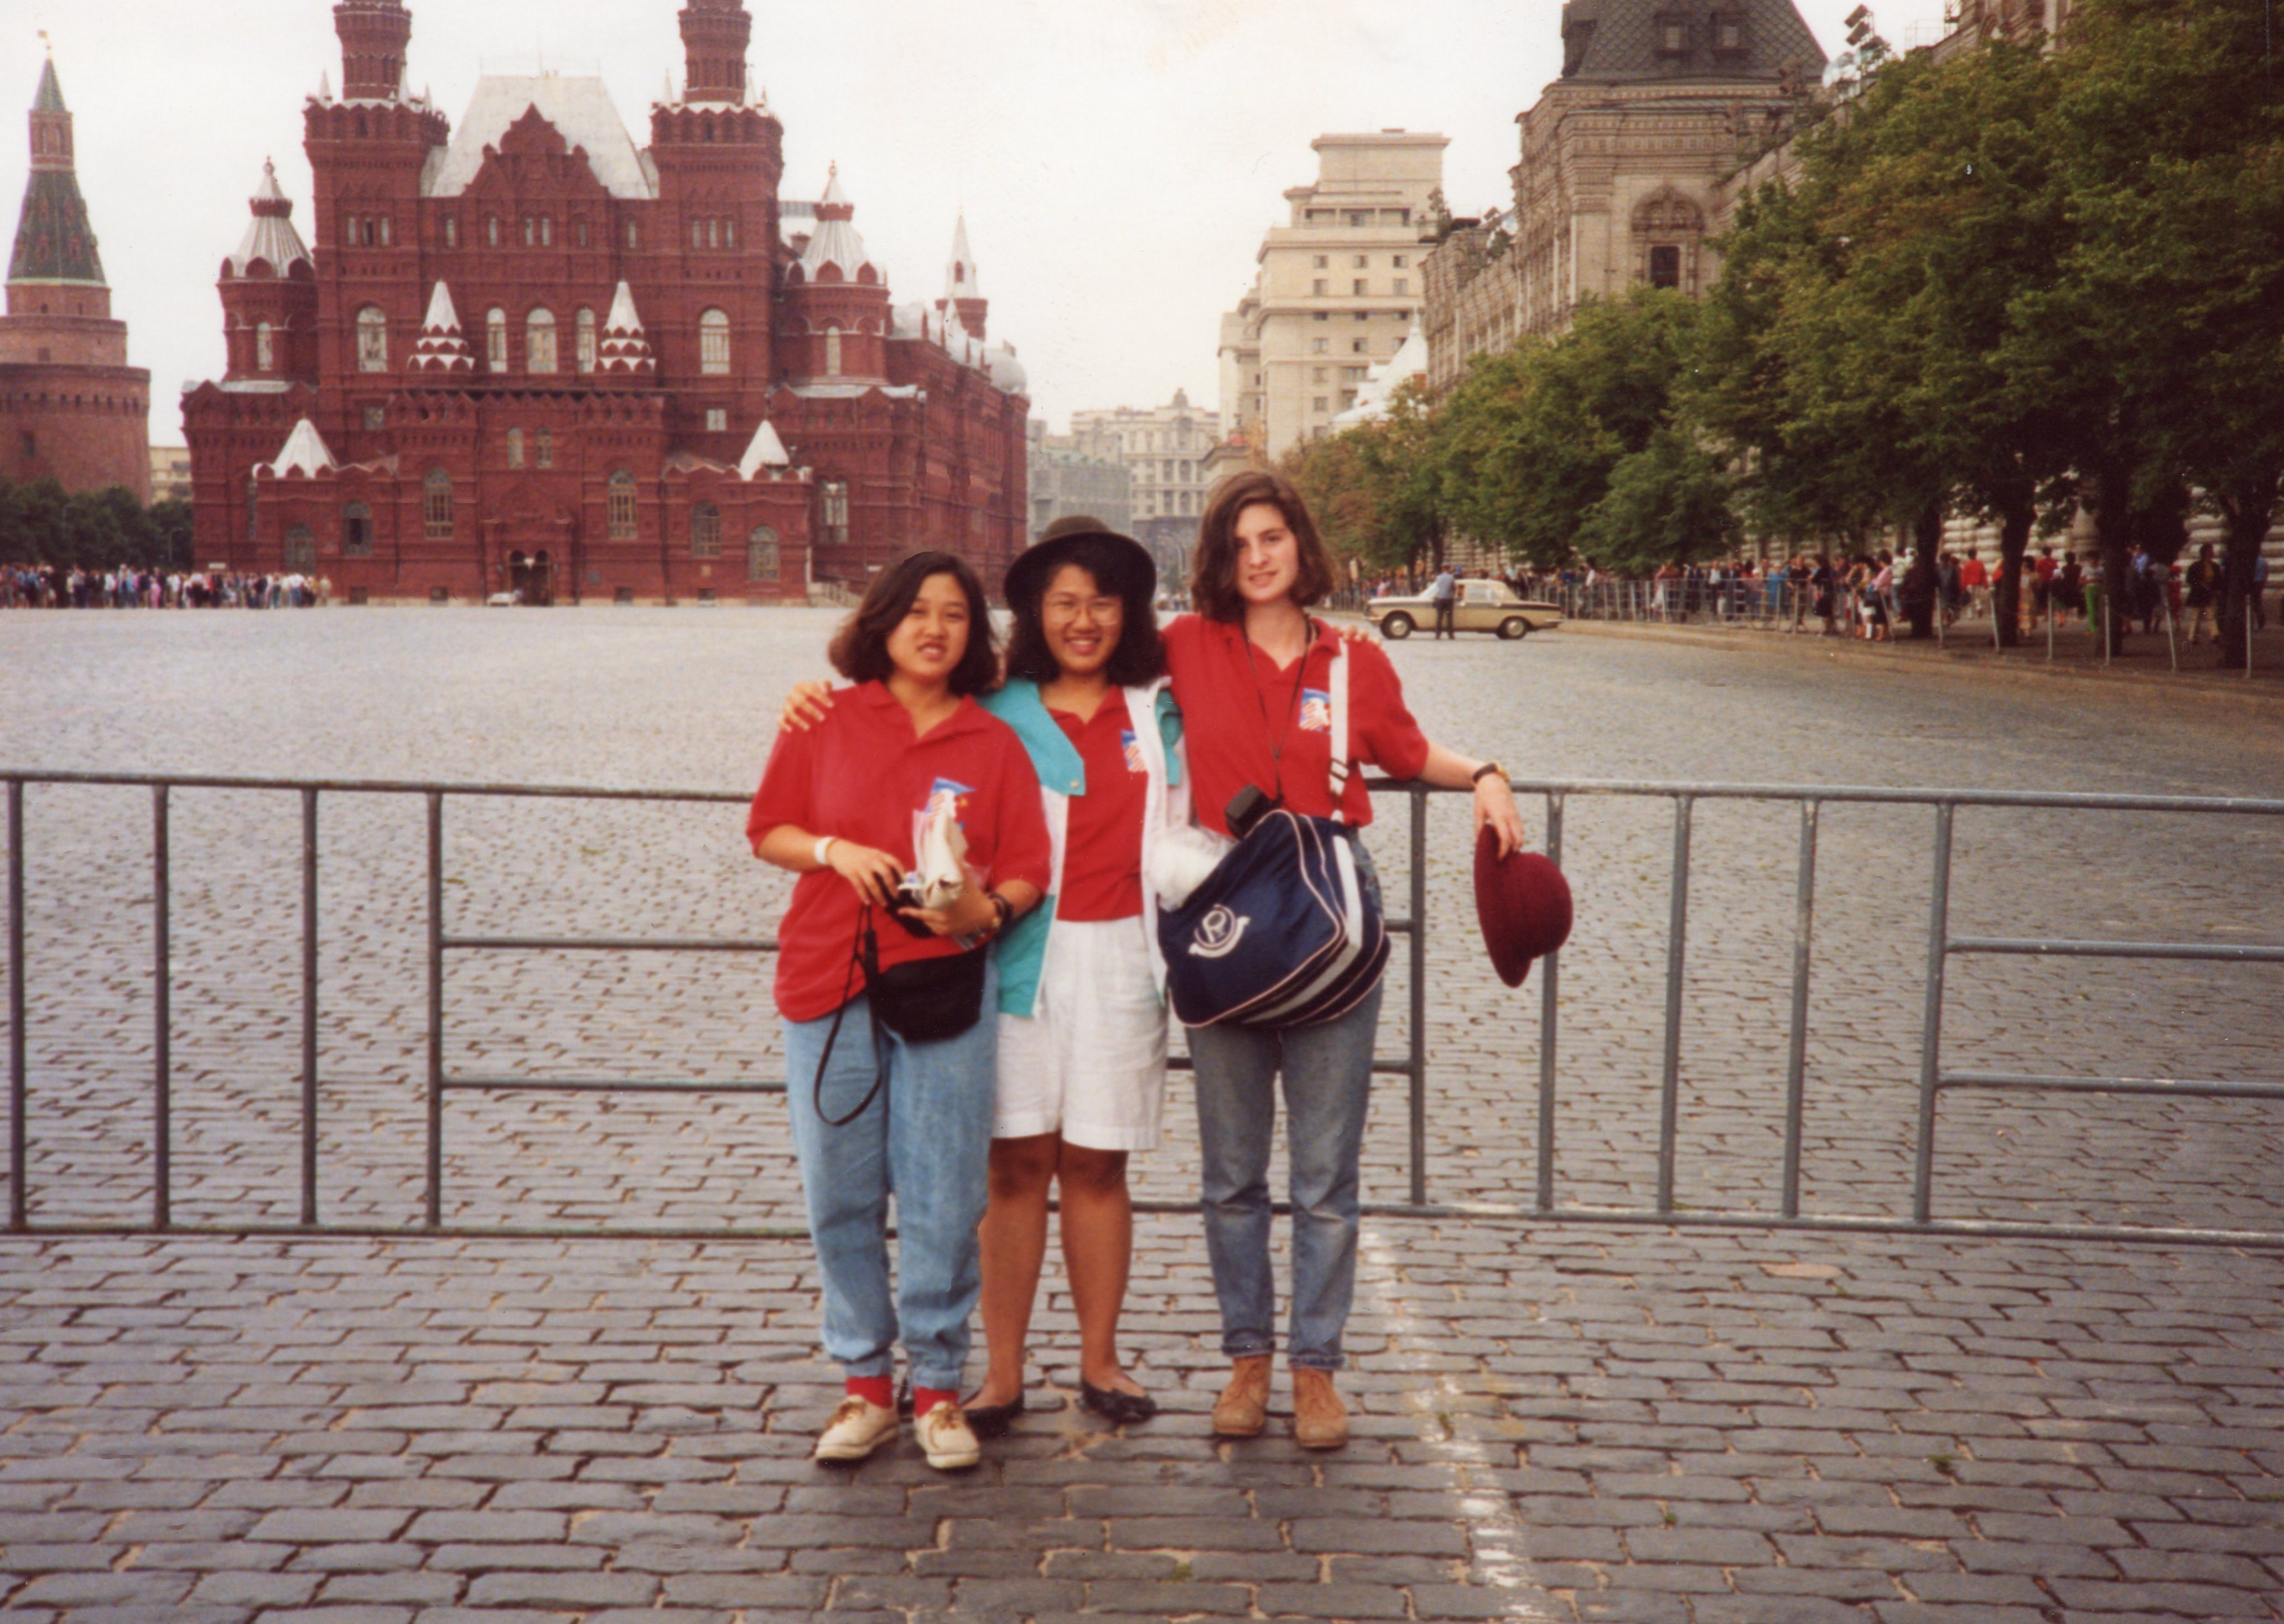 Me and friends in Red Square, summer 1991